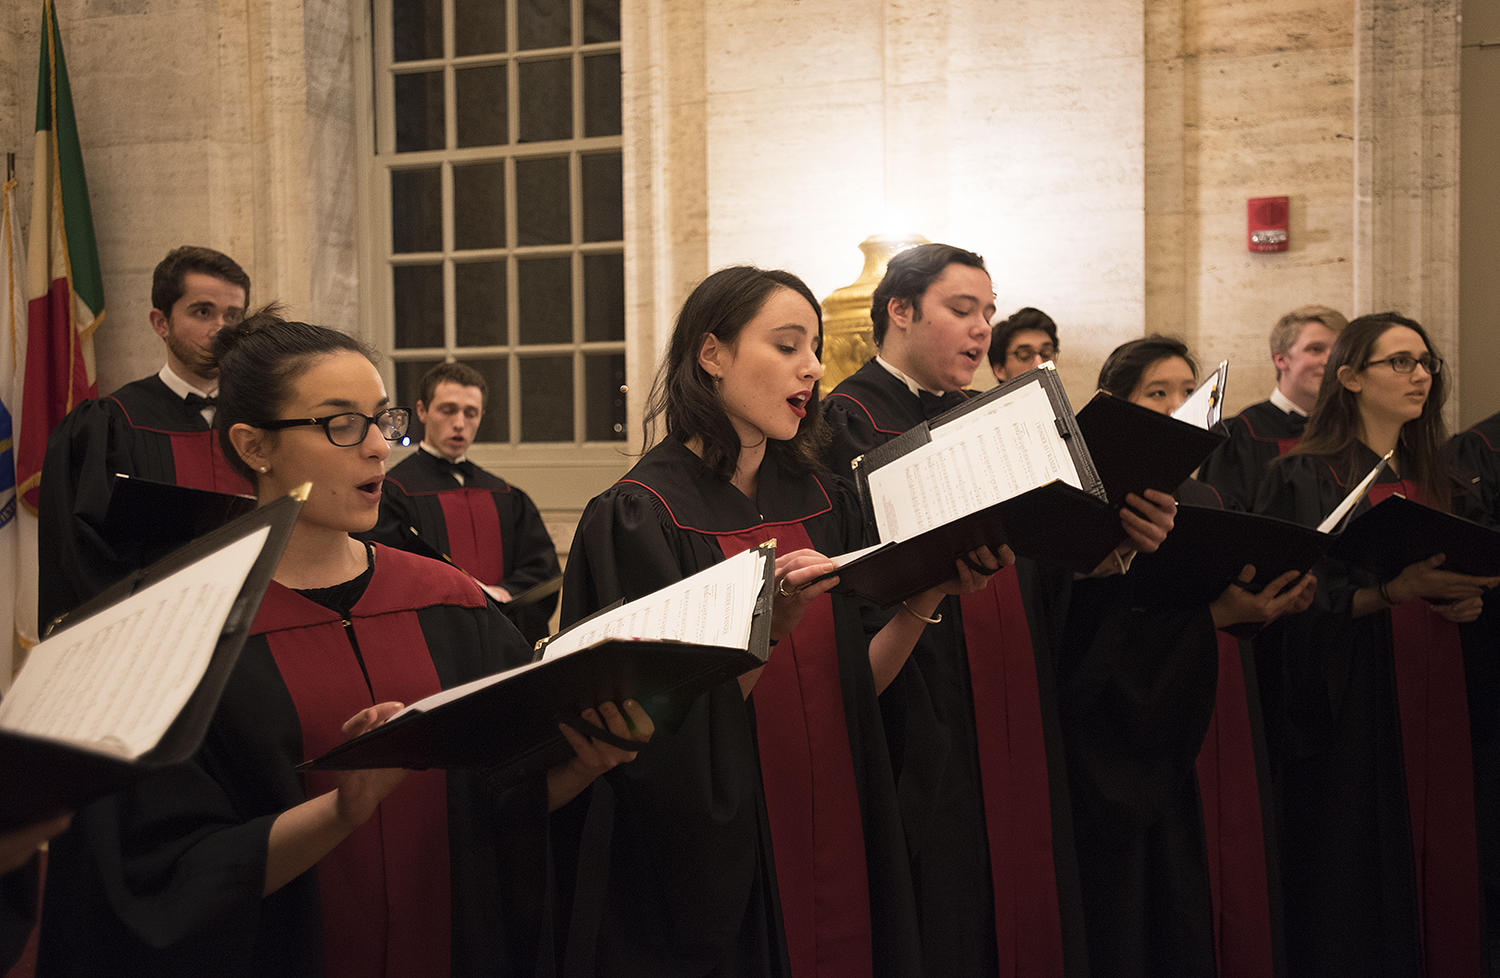 Cara Jacobson '18 (second from the left), a coral fellow and choir secretary, sings in the Memorial room of Memorial Church.